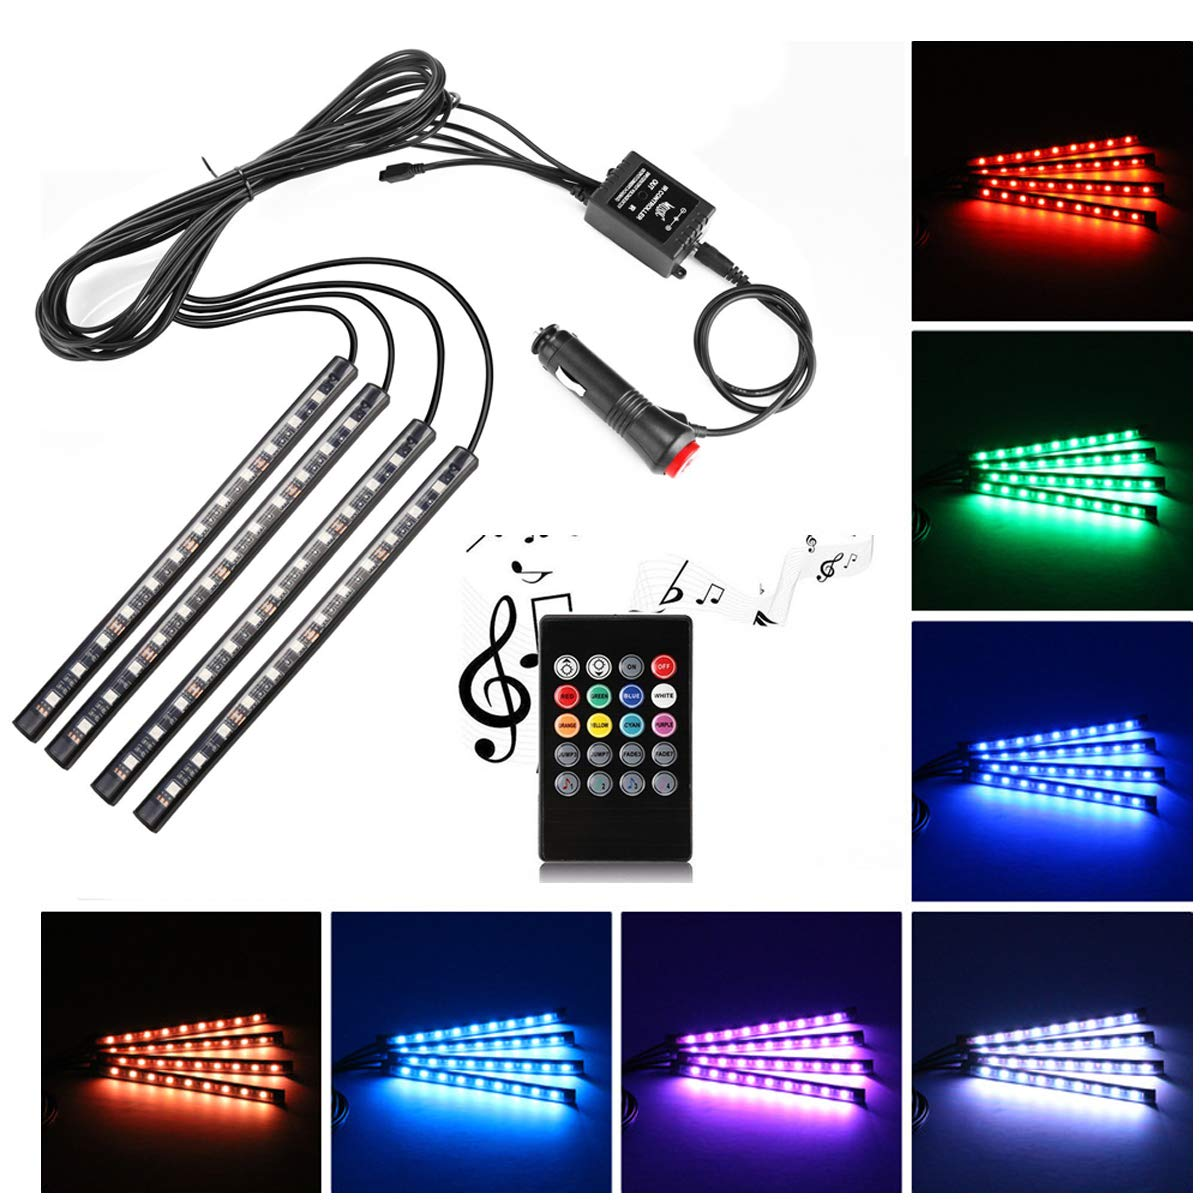 Car LED Strip Light, Uniwit 4 Pieces DC 12V 72 LED Multicolor Car Interior Music Light LED Underdash Lighting Kit with Sound Active Function and Wireless Remote Control Including Car Charger